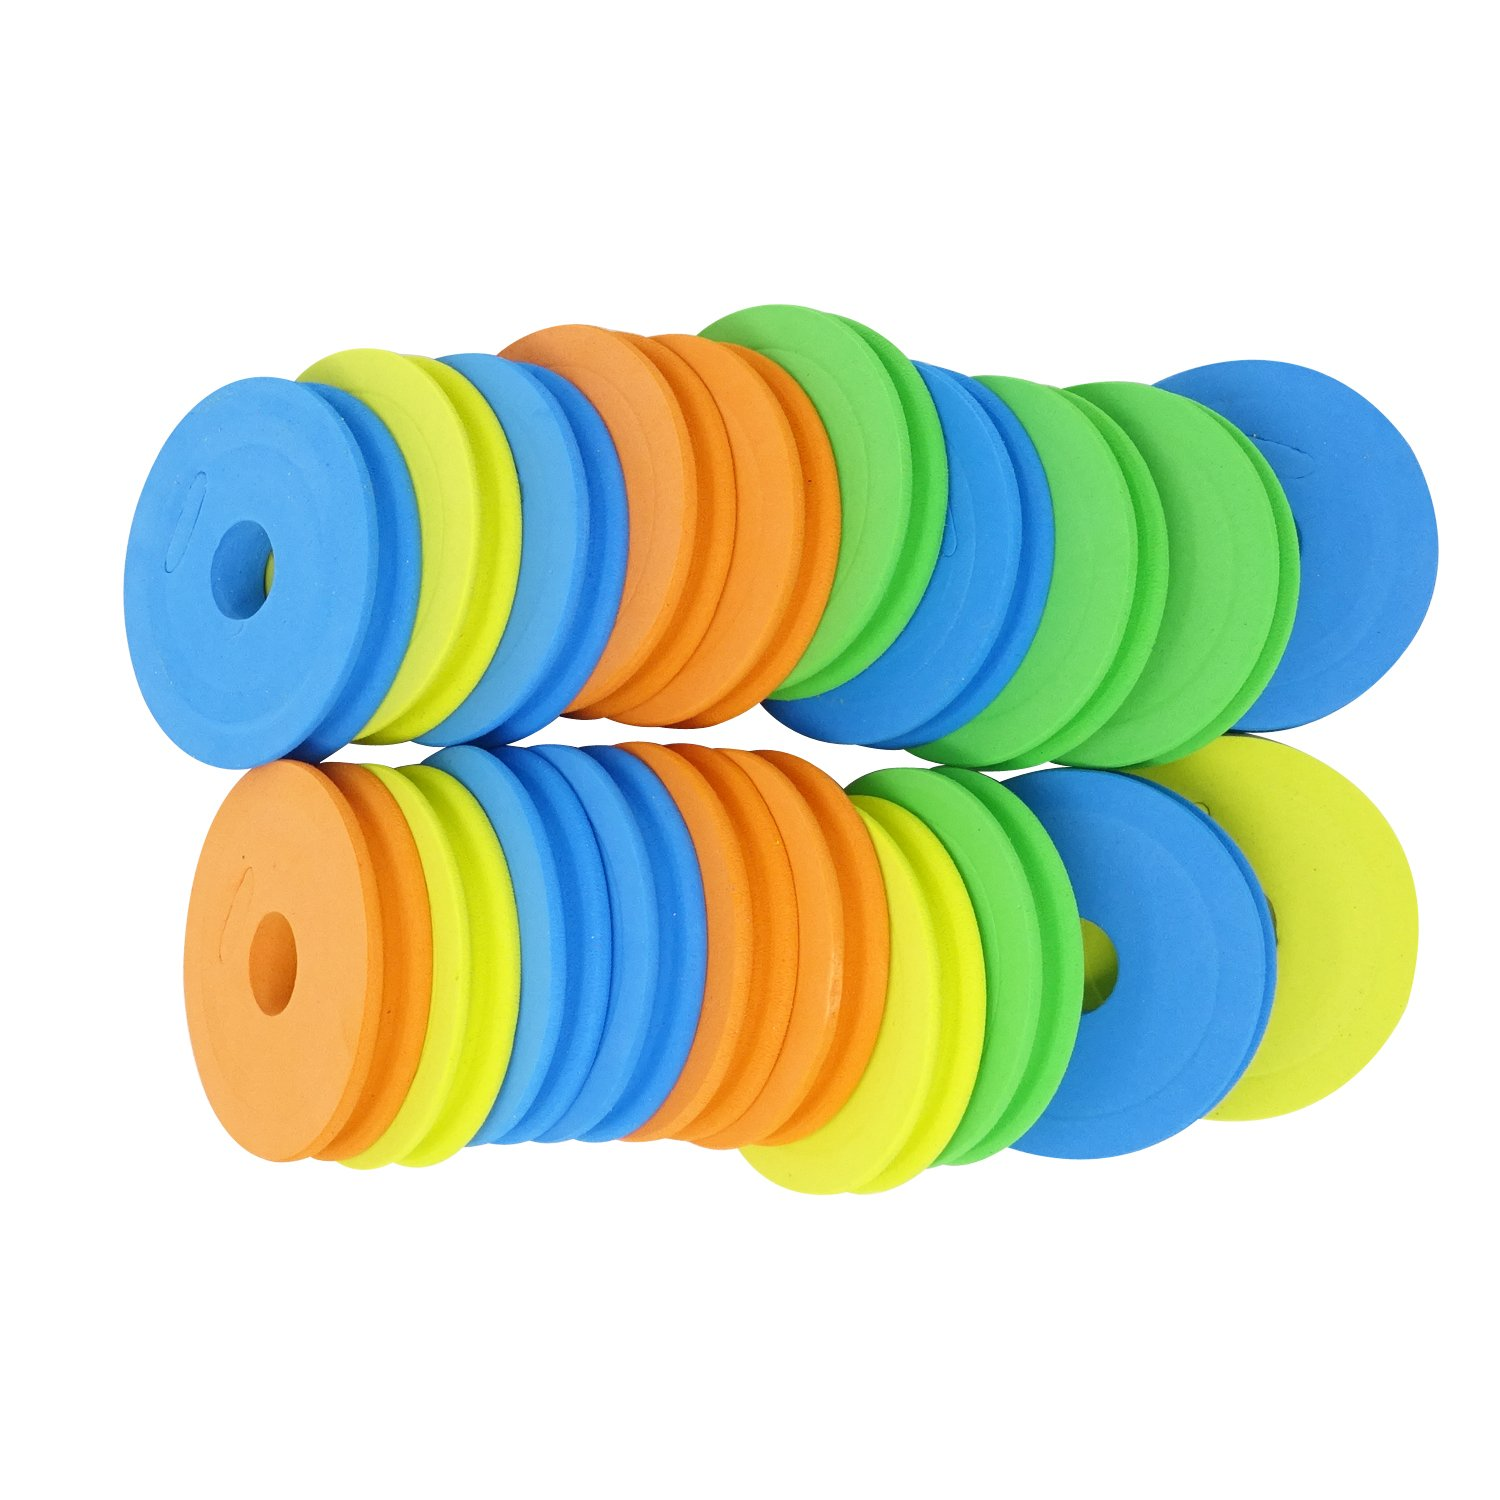 【信頼】 Honbay 20PCS 20PCS 68mm Fishing Winding Foam Fishing Spools Fishing Line Spools Circular Winding Plates B074H1YJDG, 赤猫たま商店:08440dc2 --- a0267596.xsph.ru